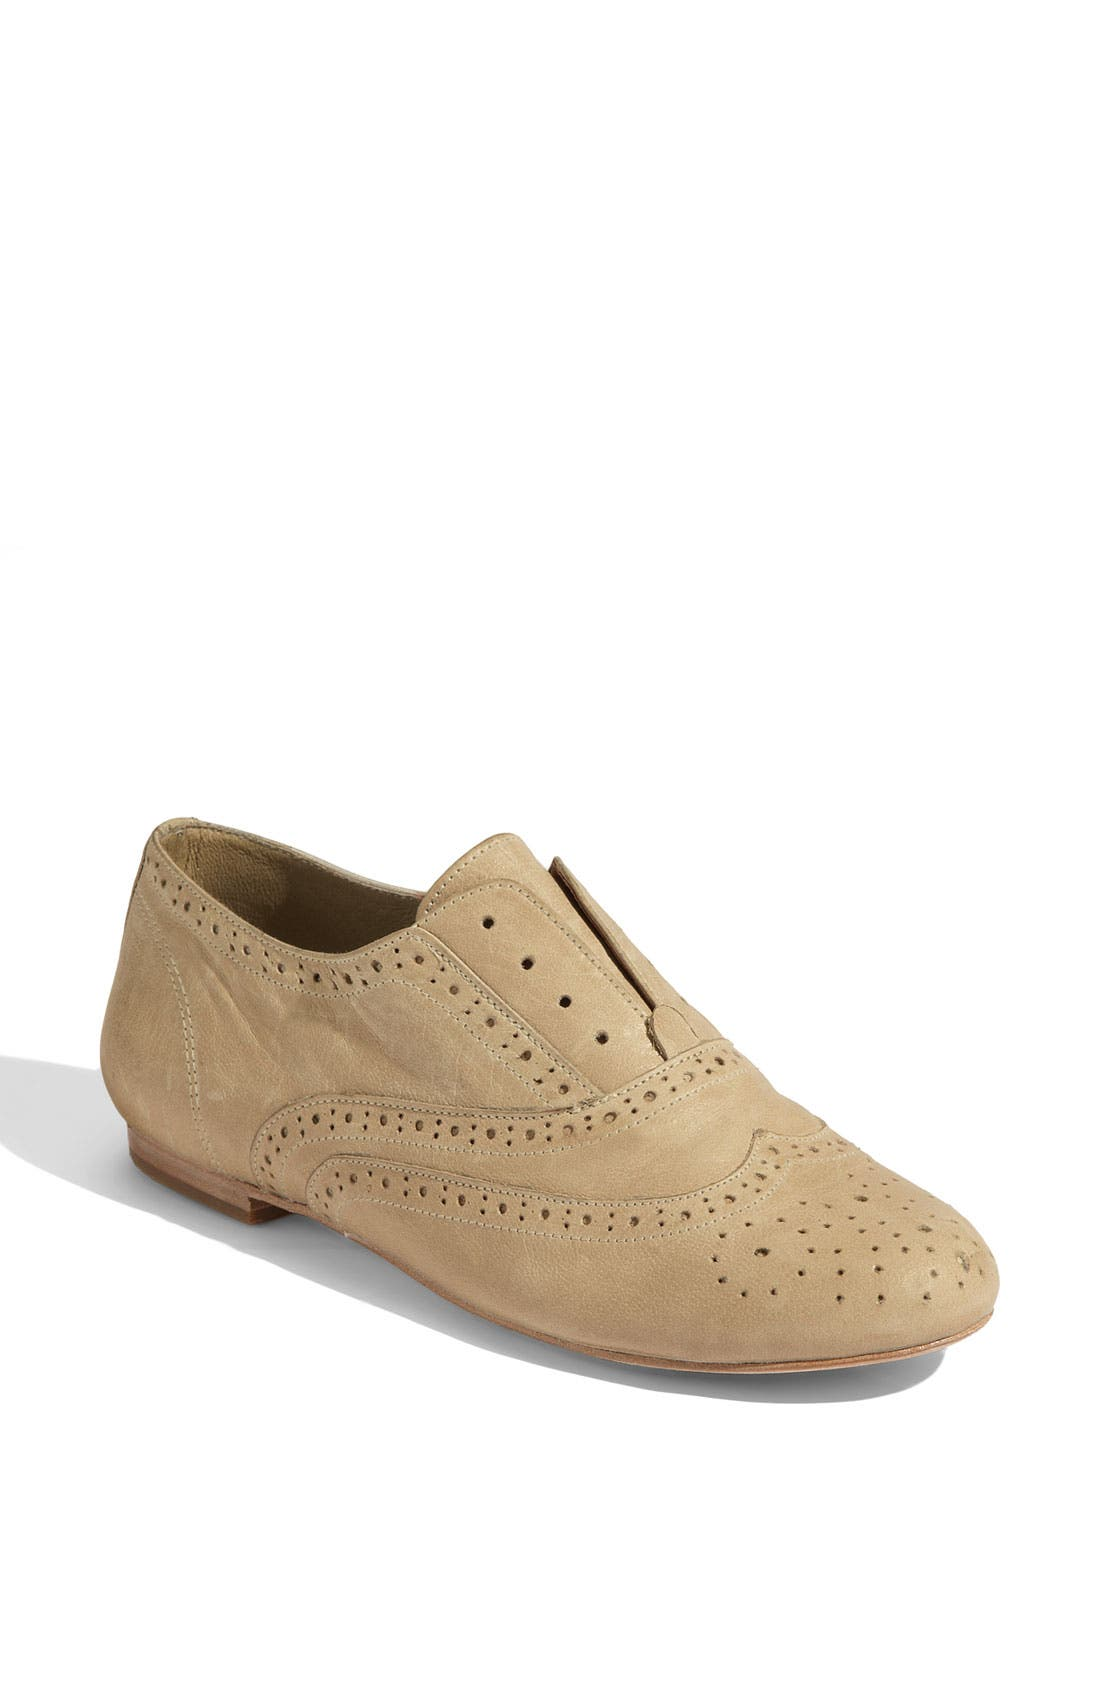 Alternate Image 1 Selected - Steve Madden 'Trouser' Laceless Oxford